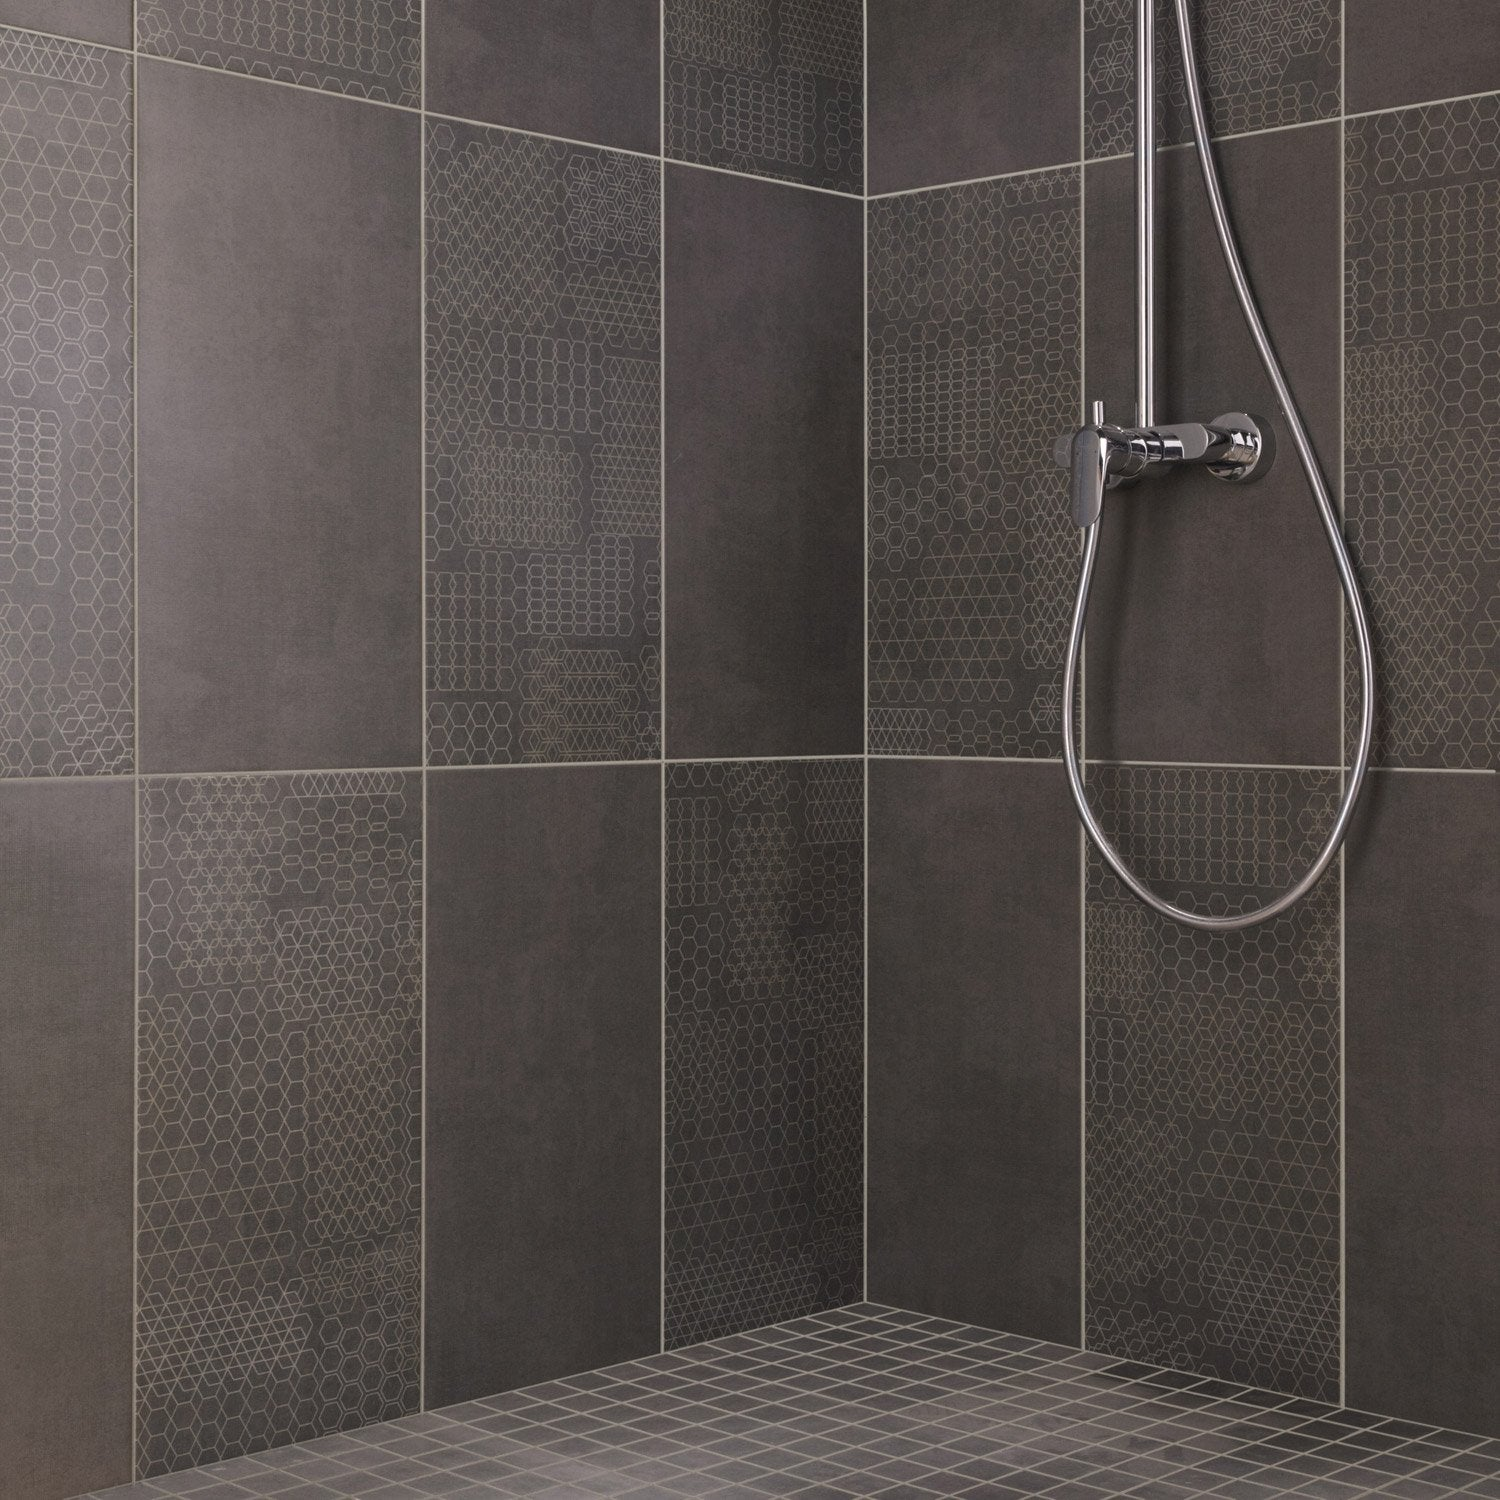 Fa ence mur anthracite tweed x cm leroy merlin - Faience salle de bain imitation pierre ...